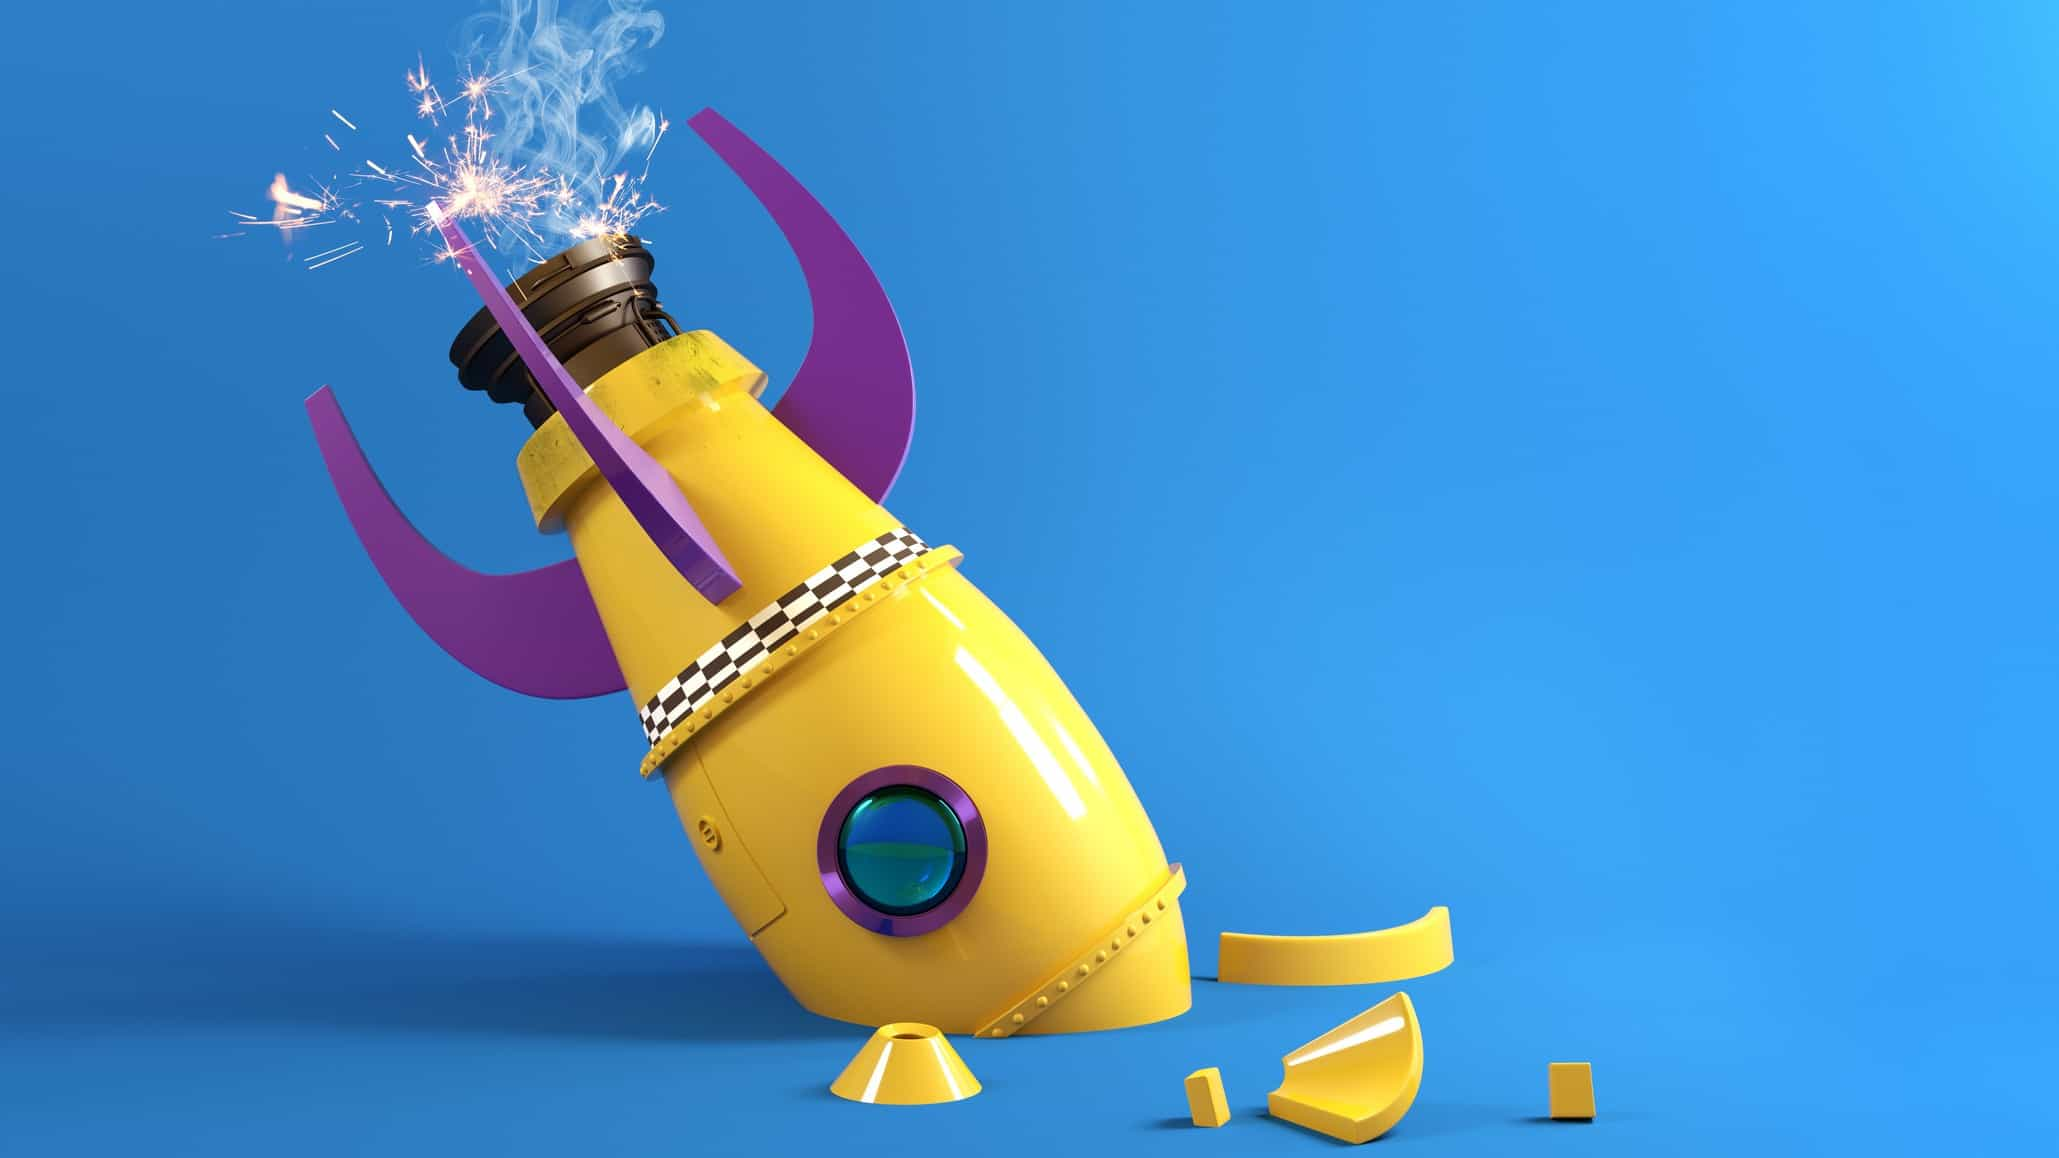 falling asx share price represented by toy rocket crashed into ground